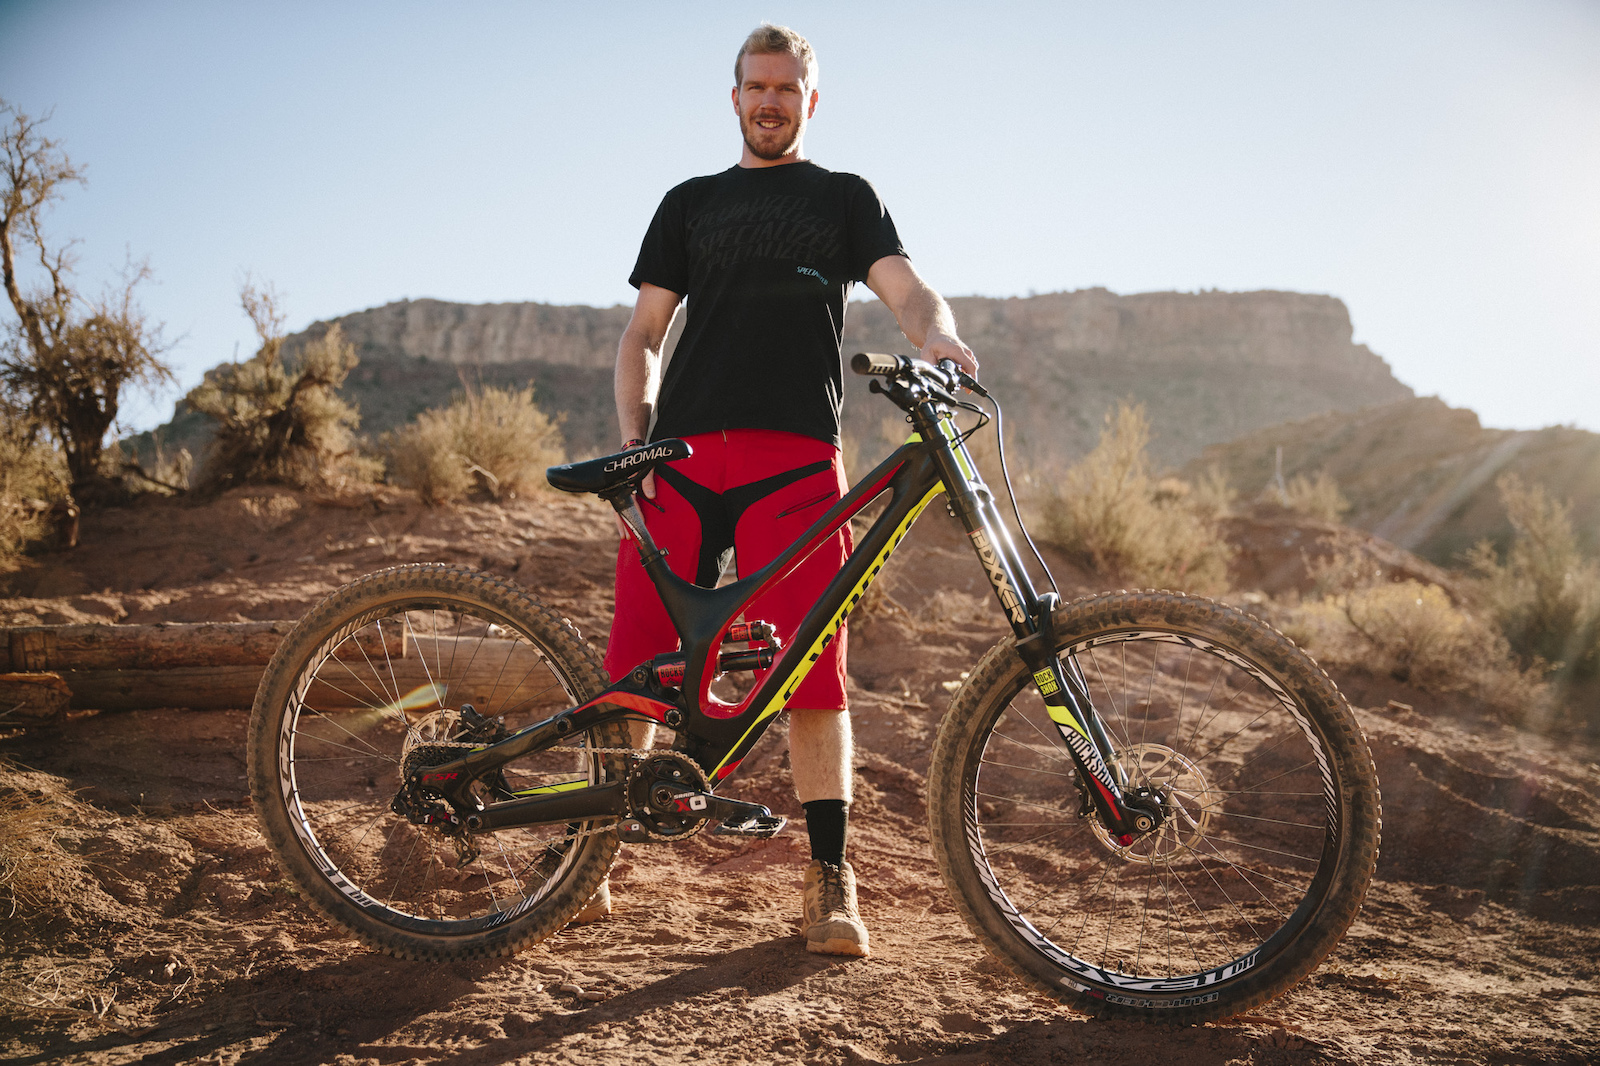 Kyle Norbraten at RedBull Rampage 2015 Virgin Utah USA